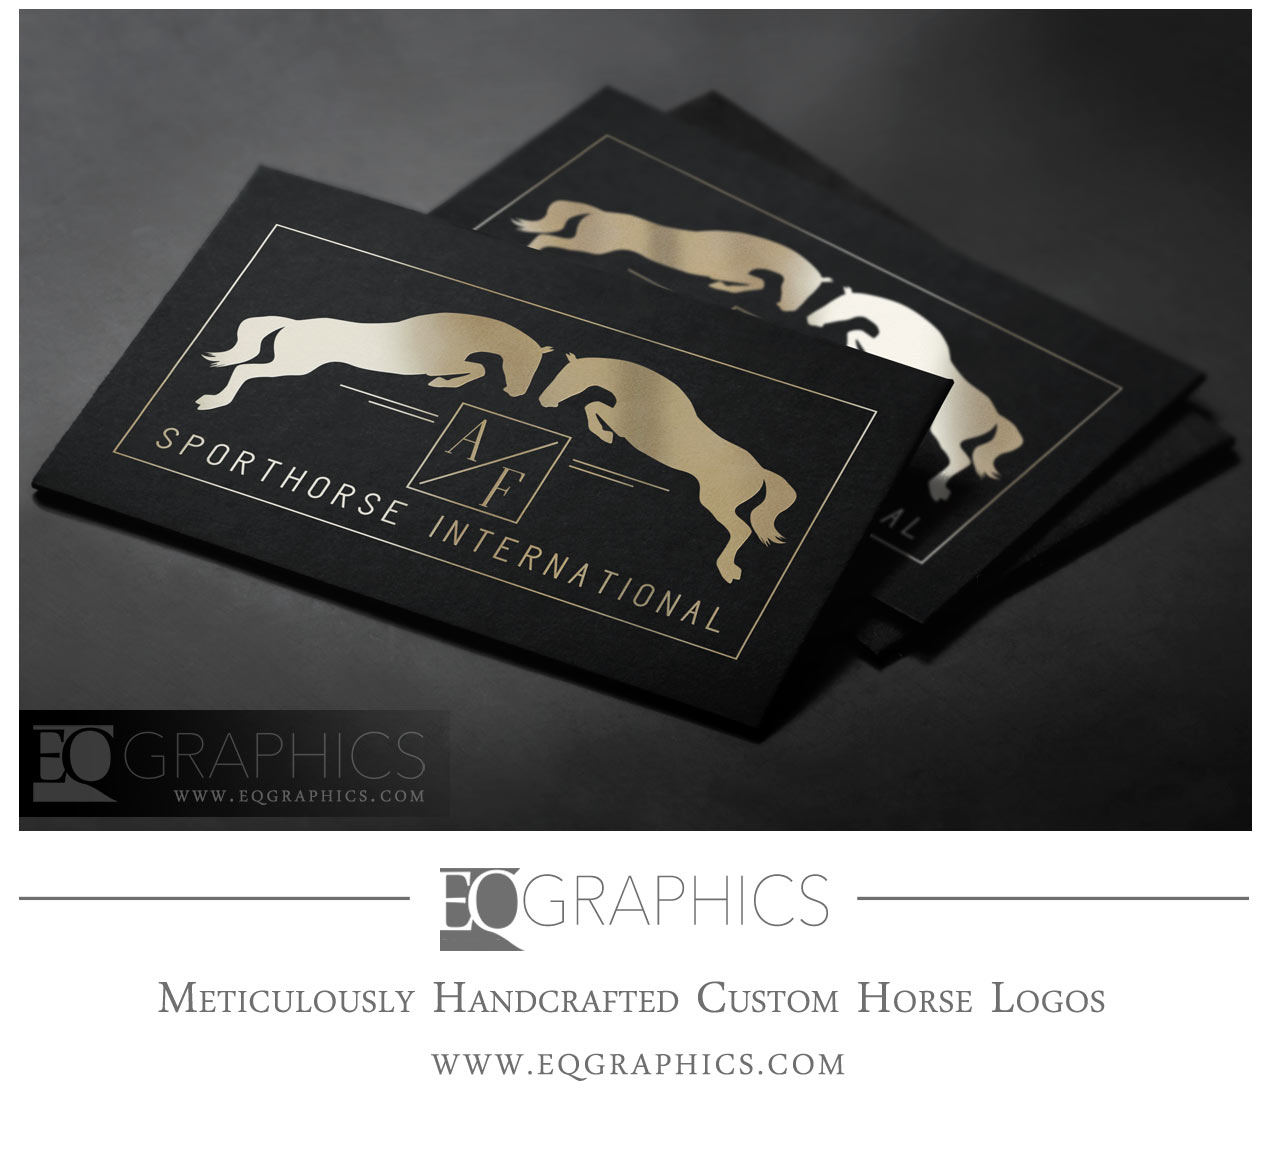 AF Sporthorses Jumping Horse Silhouette Jumper Logo by EQ Graphics Custom Logos